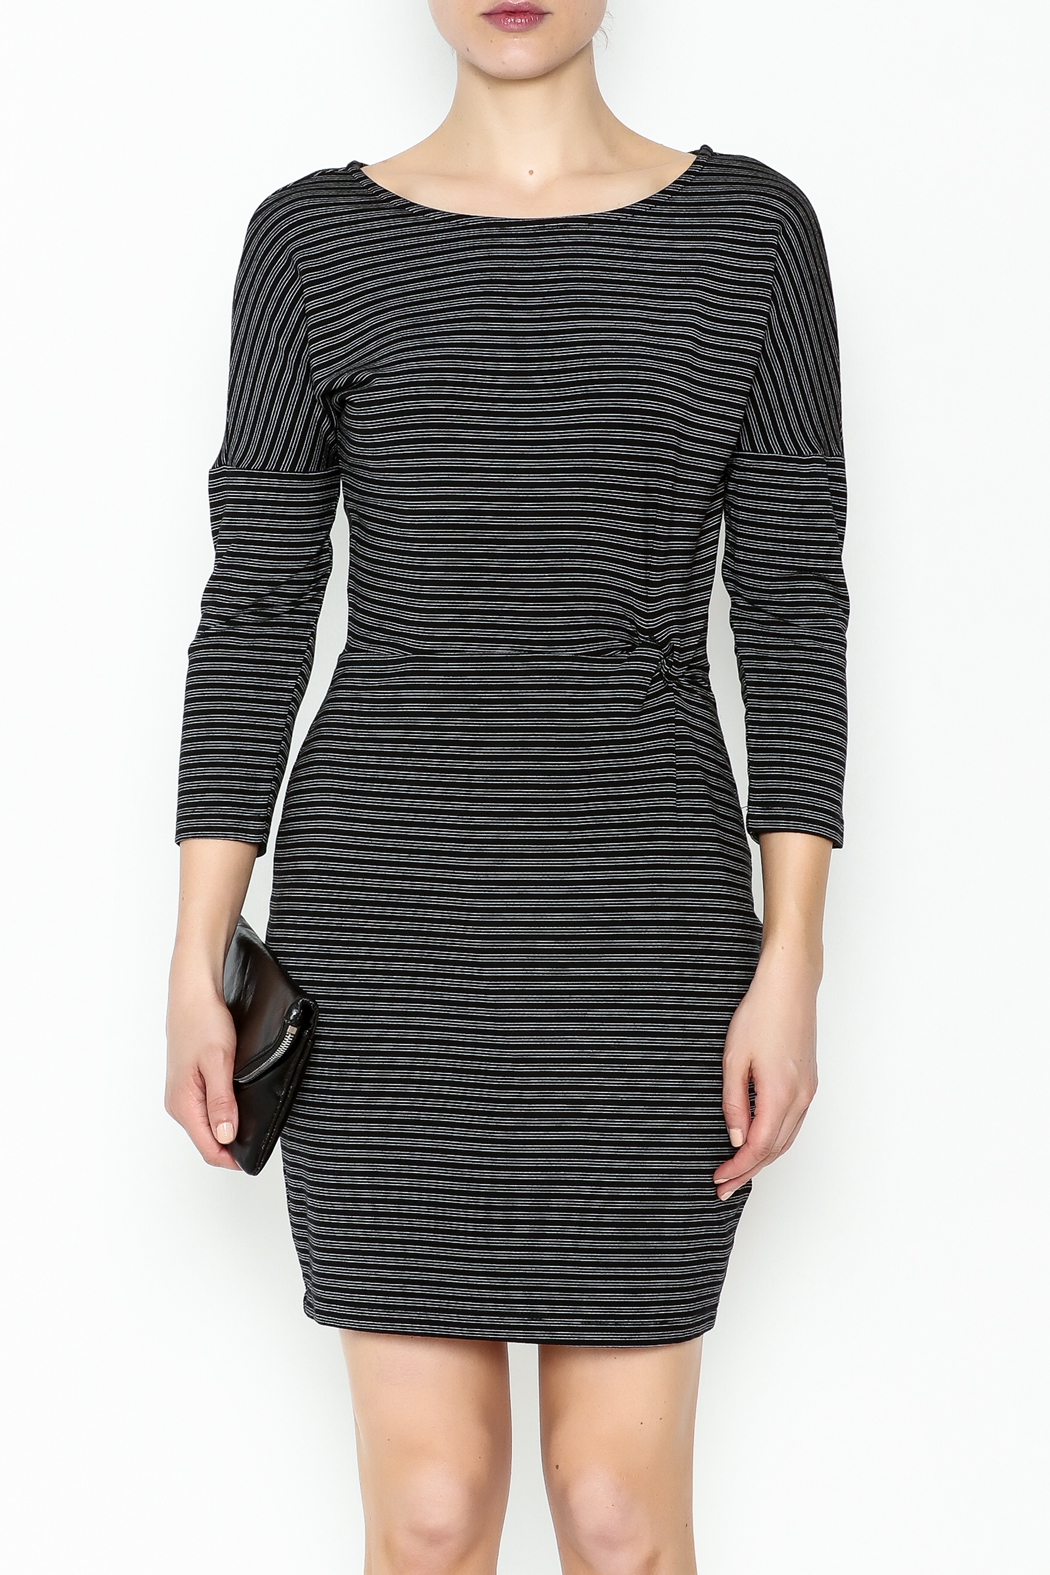 Cupcakes and Cashmere Waist Flattering Stripe Dress - Front Full Image